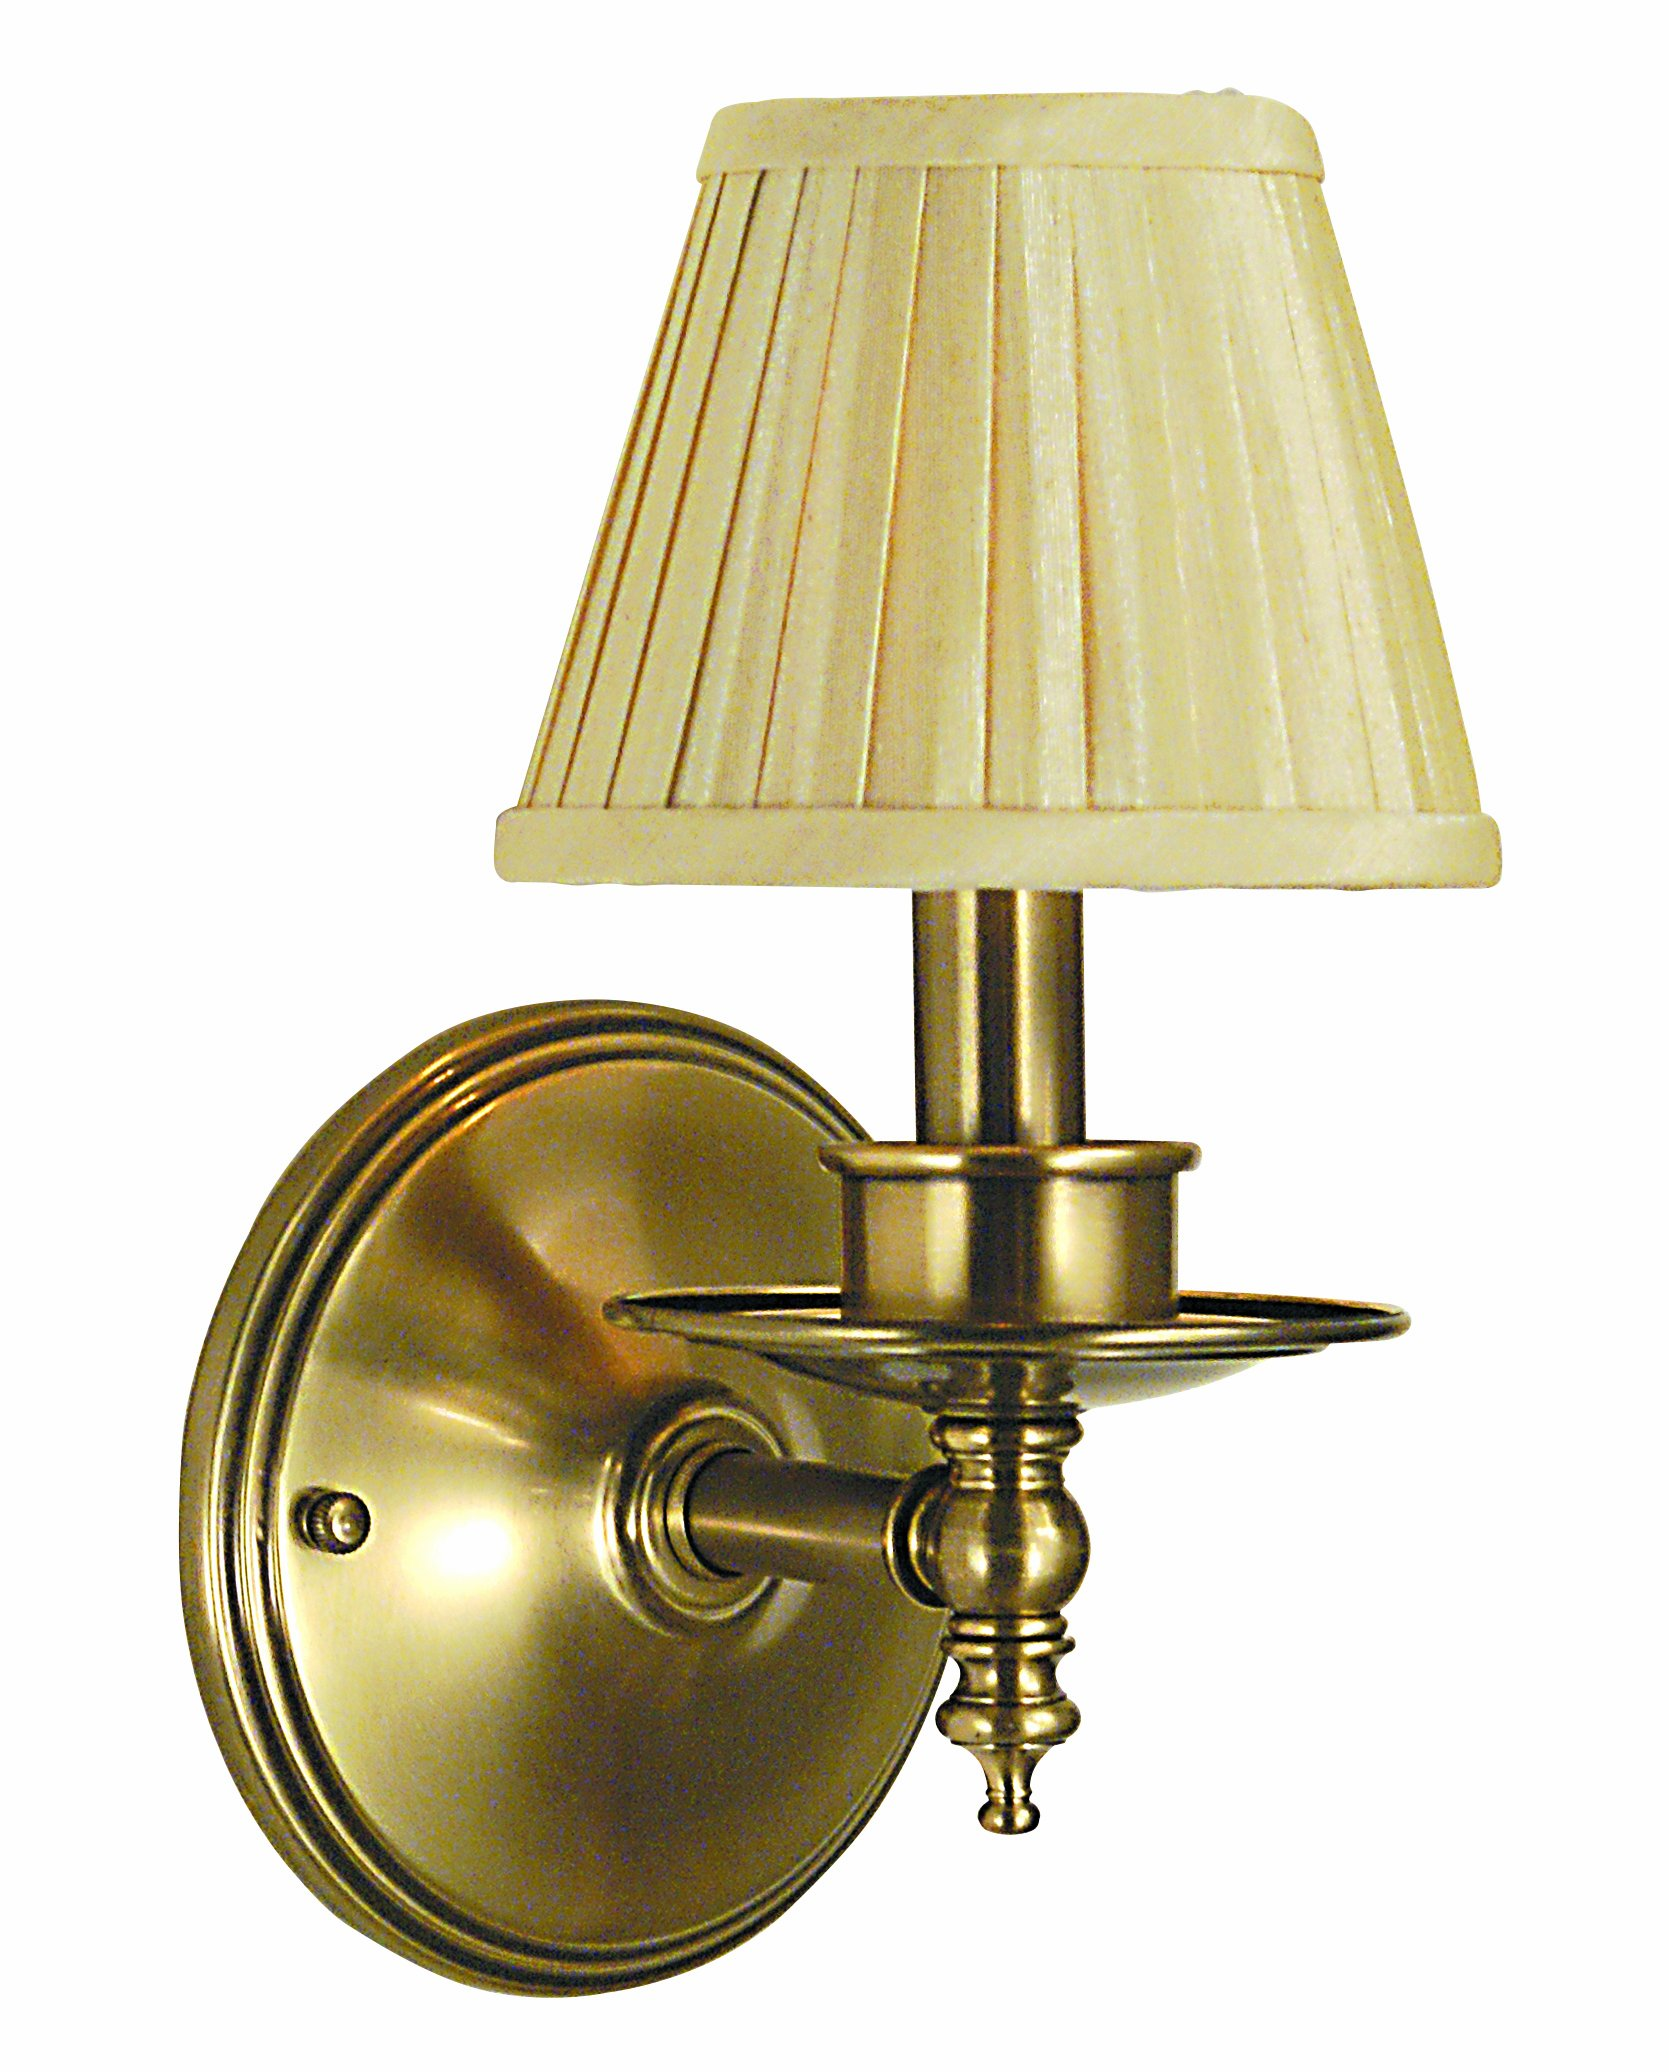 Framburg 2511 AB Sheraton 1-Light Wall Sconce with Golden Pleated Fabric Shade, Antique Brass by Framburg